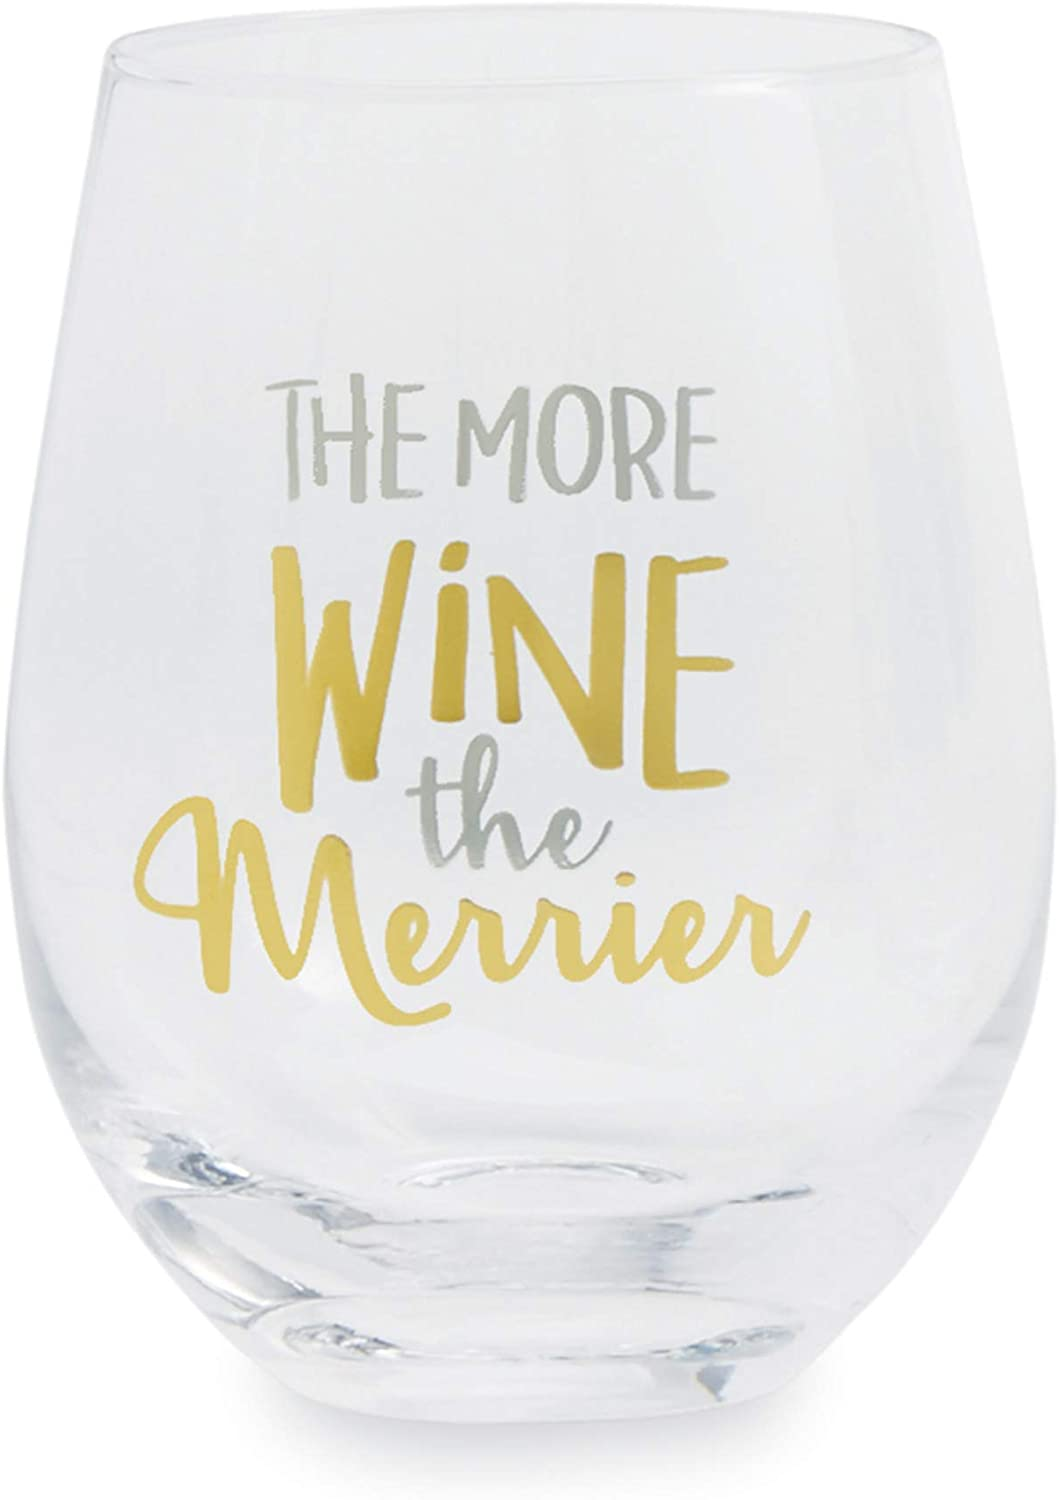 Mud Pie Wine Glass 16 oz Clear Low price ! Super beauty product restock quality top!